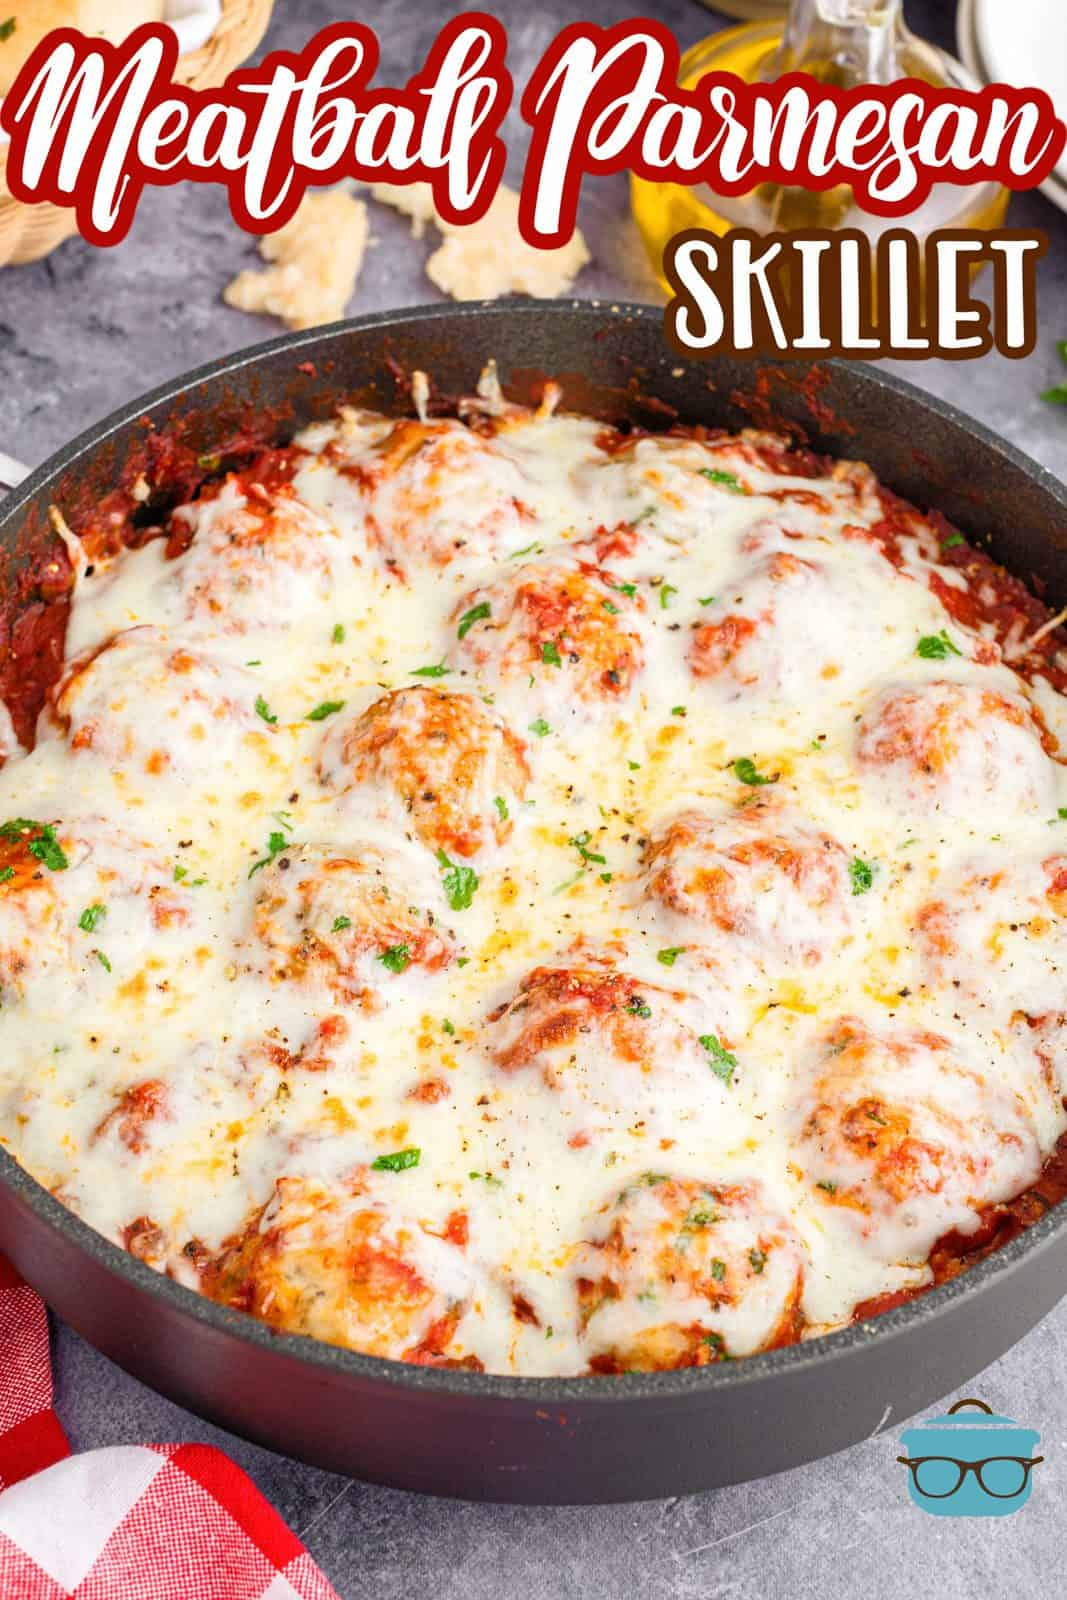 Pinterest image of Meatball Parmesan Skillet in pan topped with parsley.